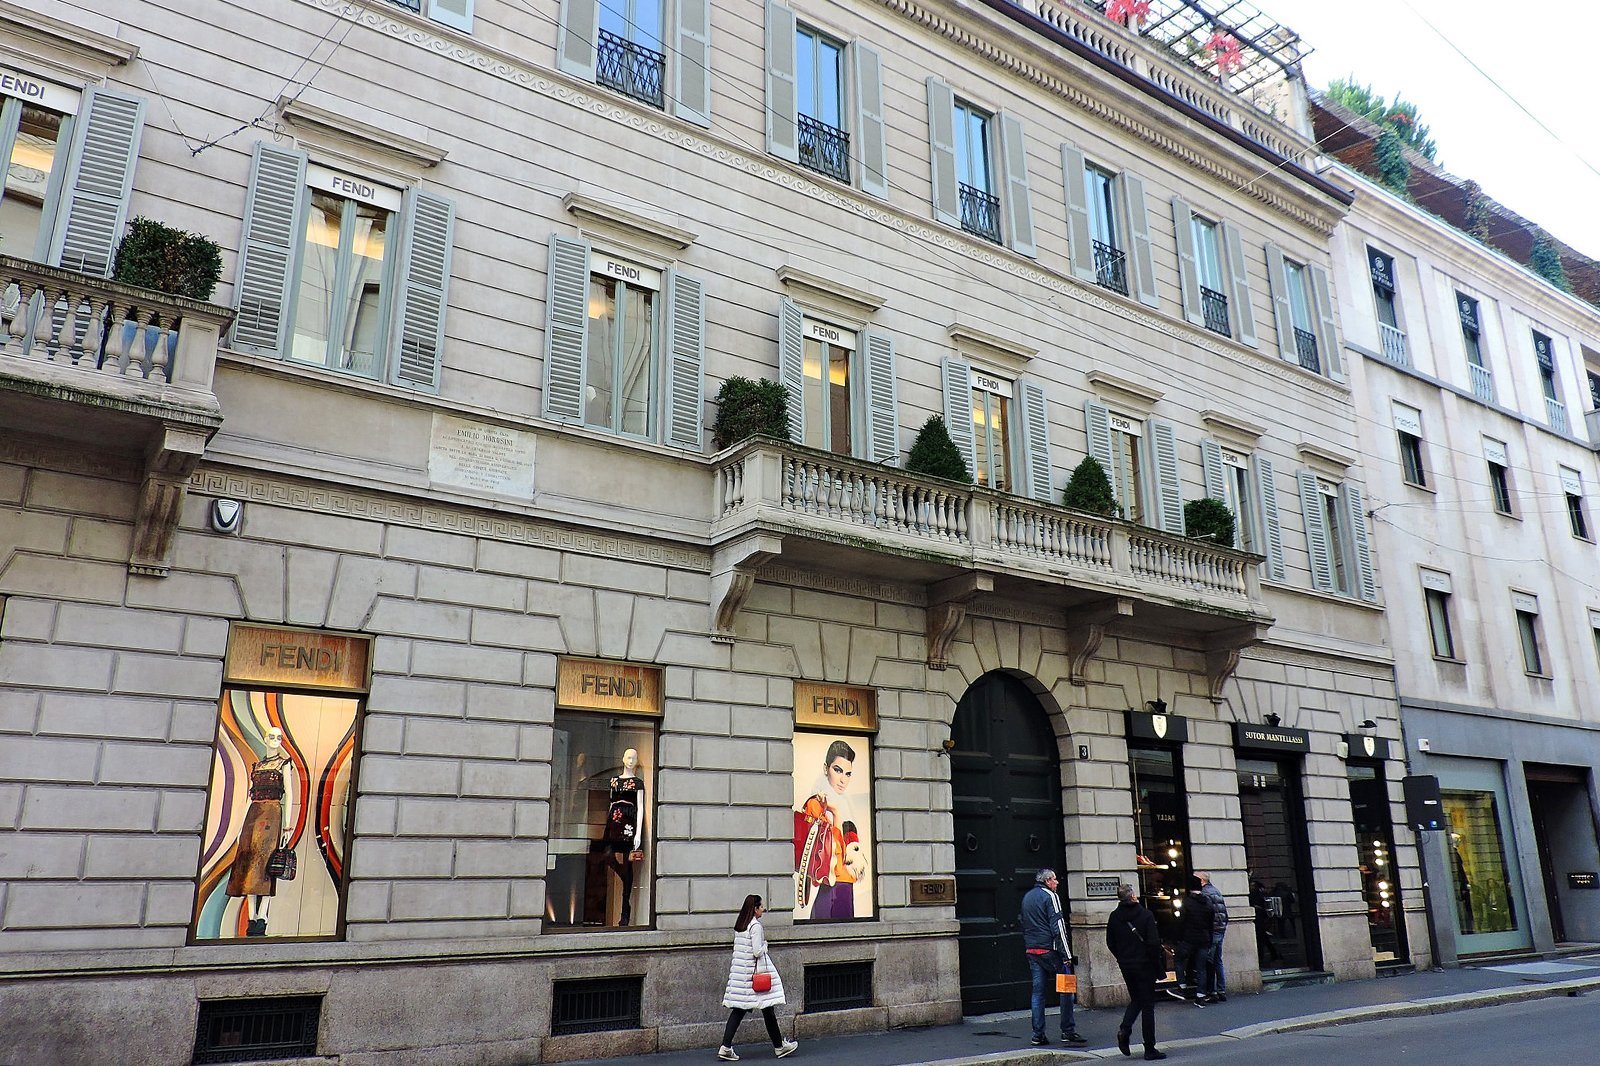 10 Famous Shopping Streets in Italy - Where to Shop in Italy